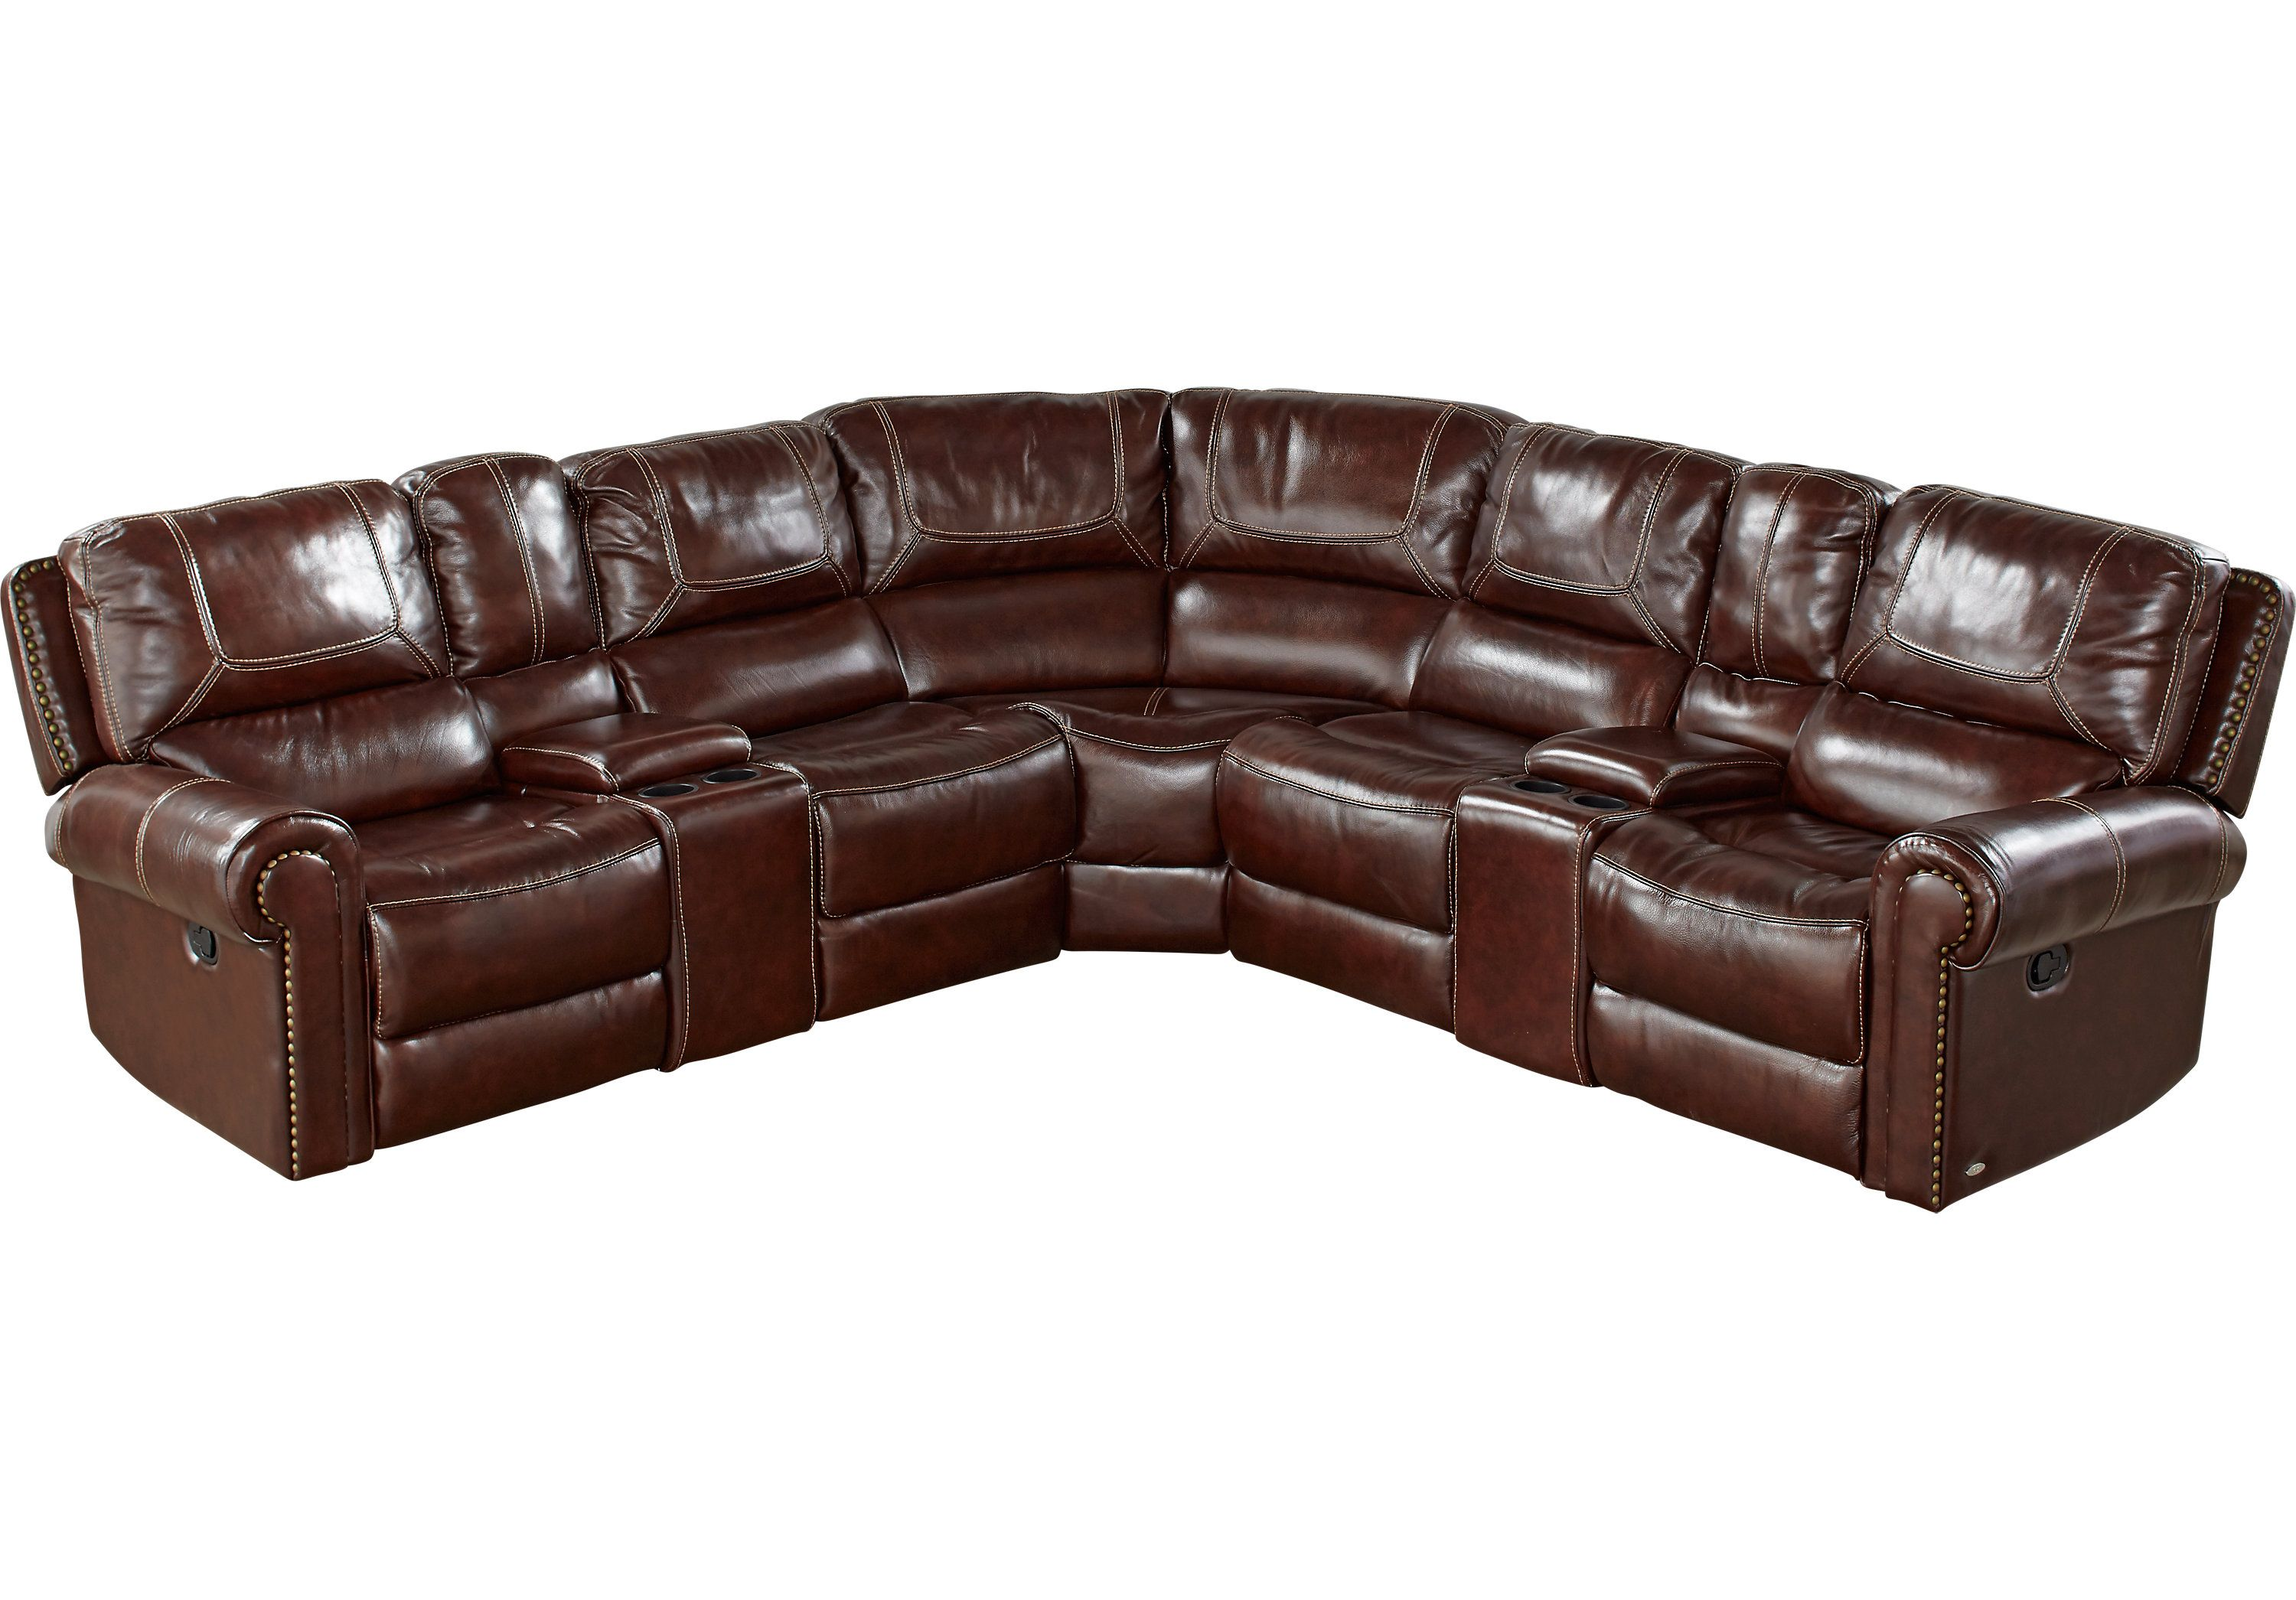 Cindy Crawford Home Cindy Crawford Home Campania Brown Leather 7 Pc Reclining